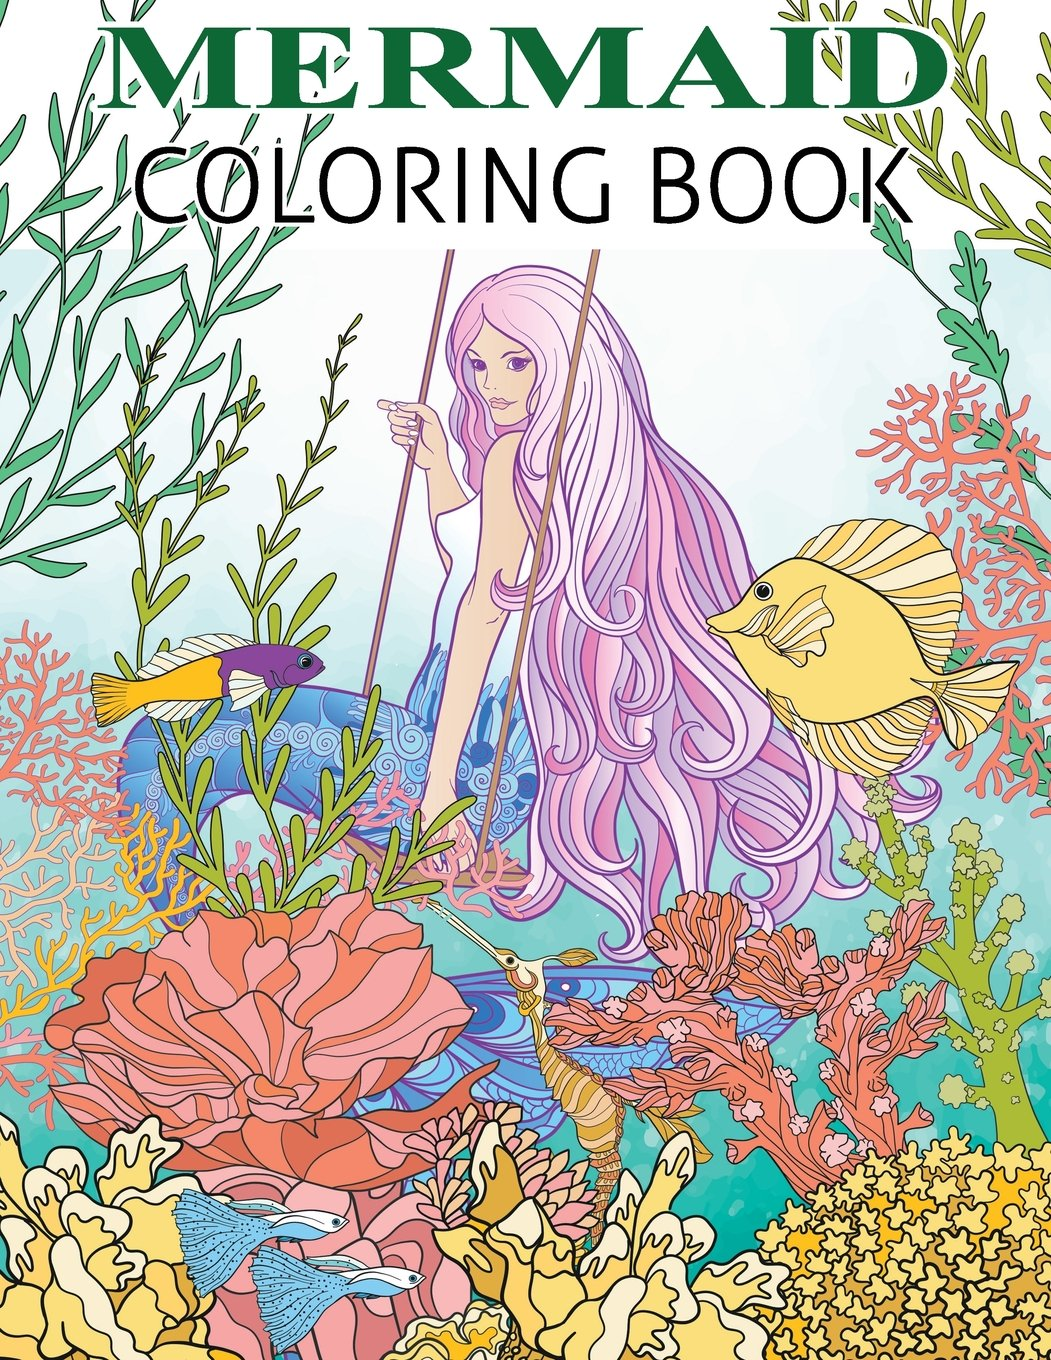 - Amazon.com: Mermaid Coloring Book: Mermaid Coloring Book For